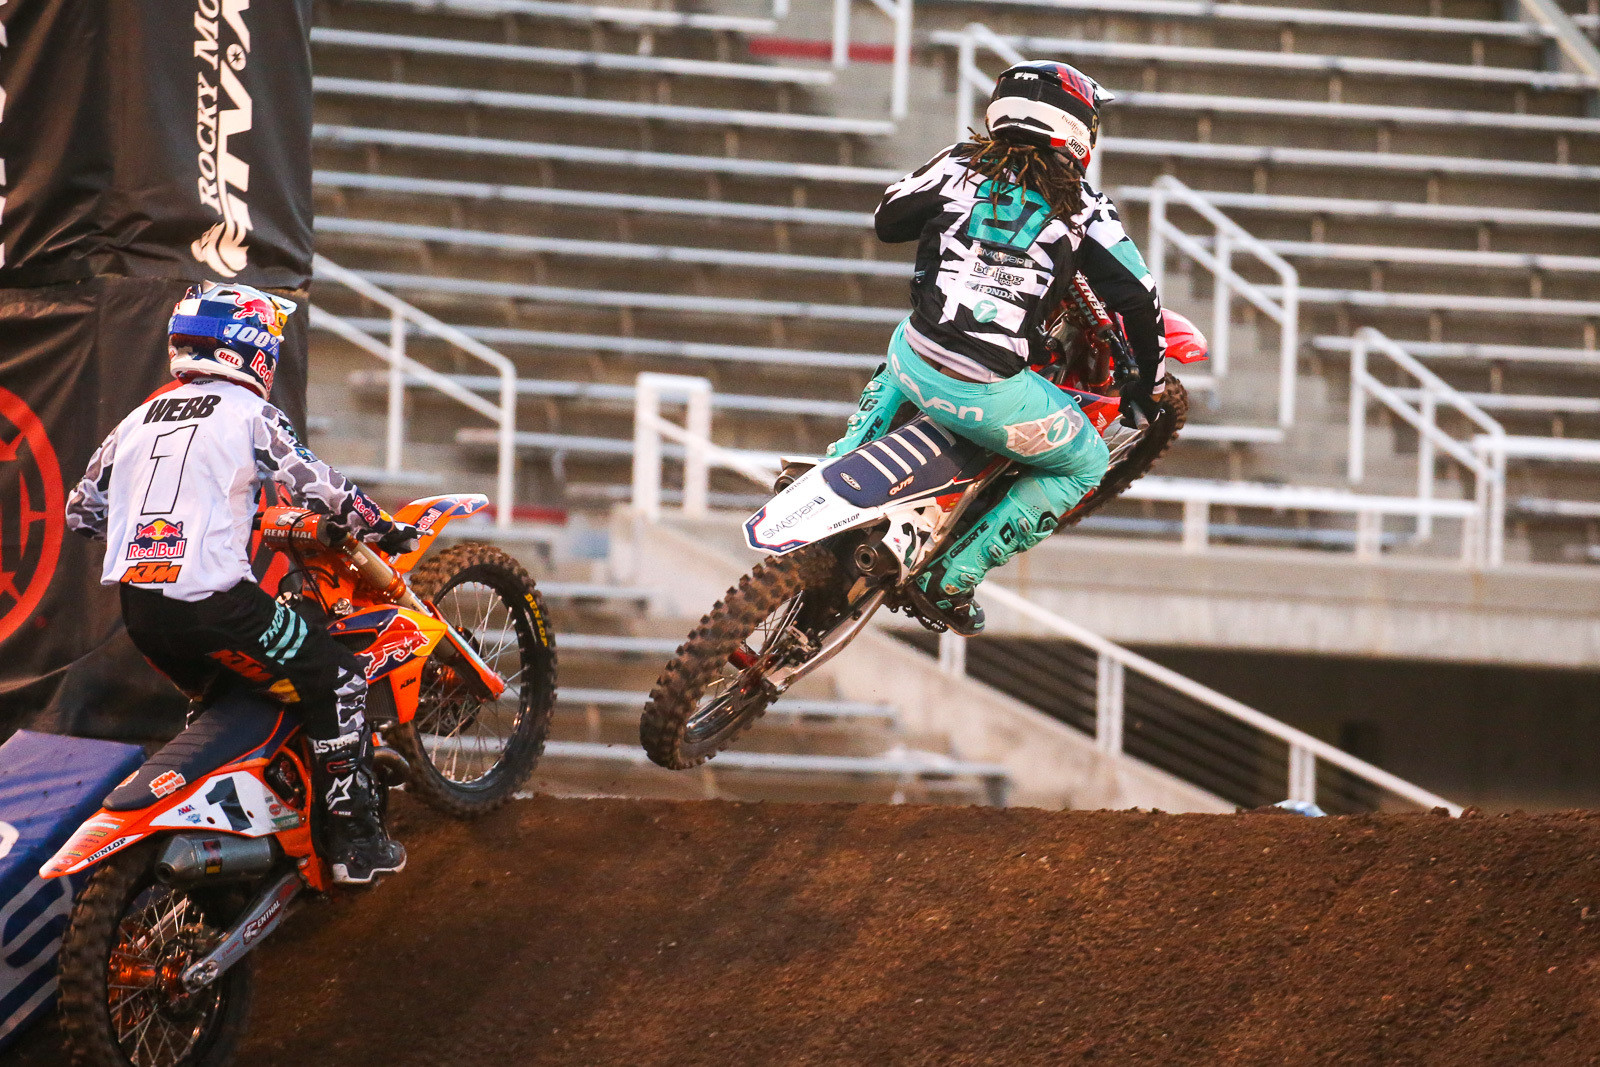 Malcolm Stewart and Cooper Webb battling it out in the heat race.